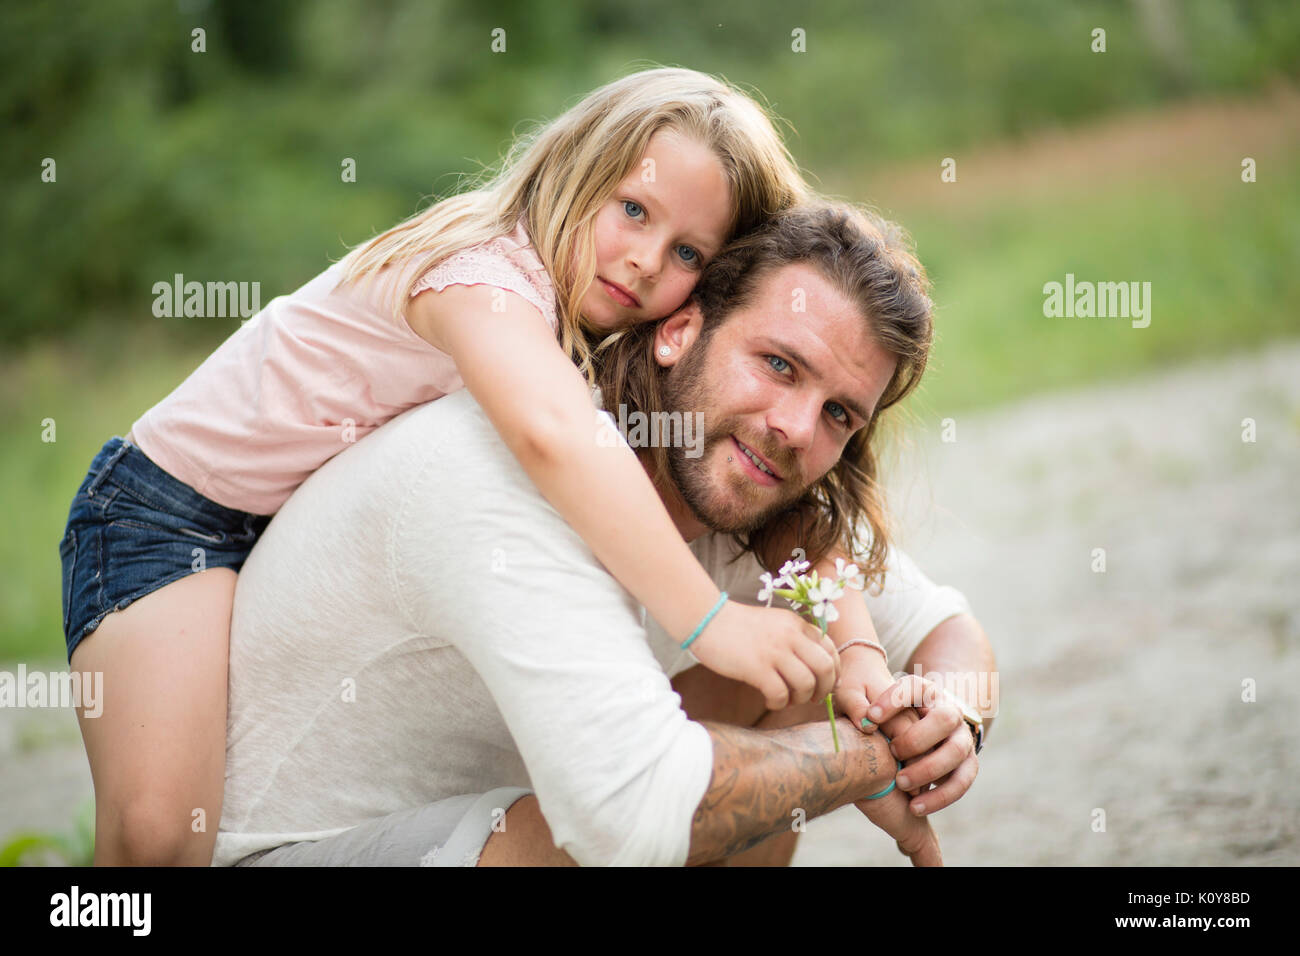 Father and daughter together in the forest - Stock Image